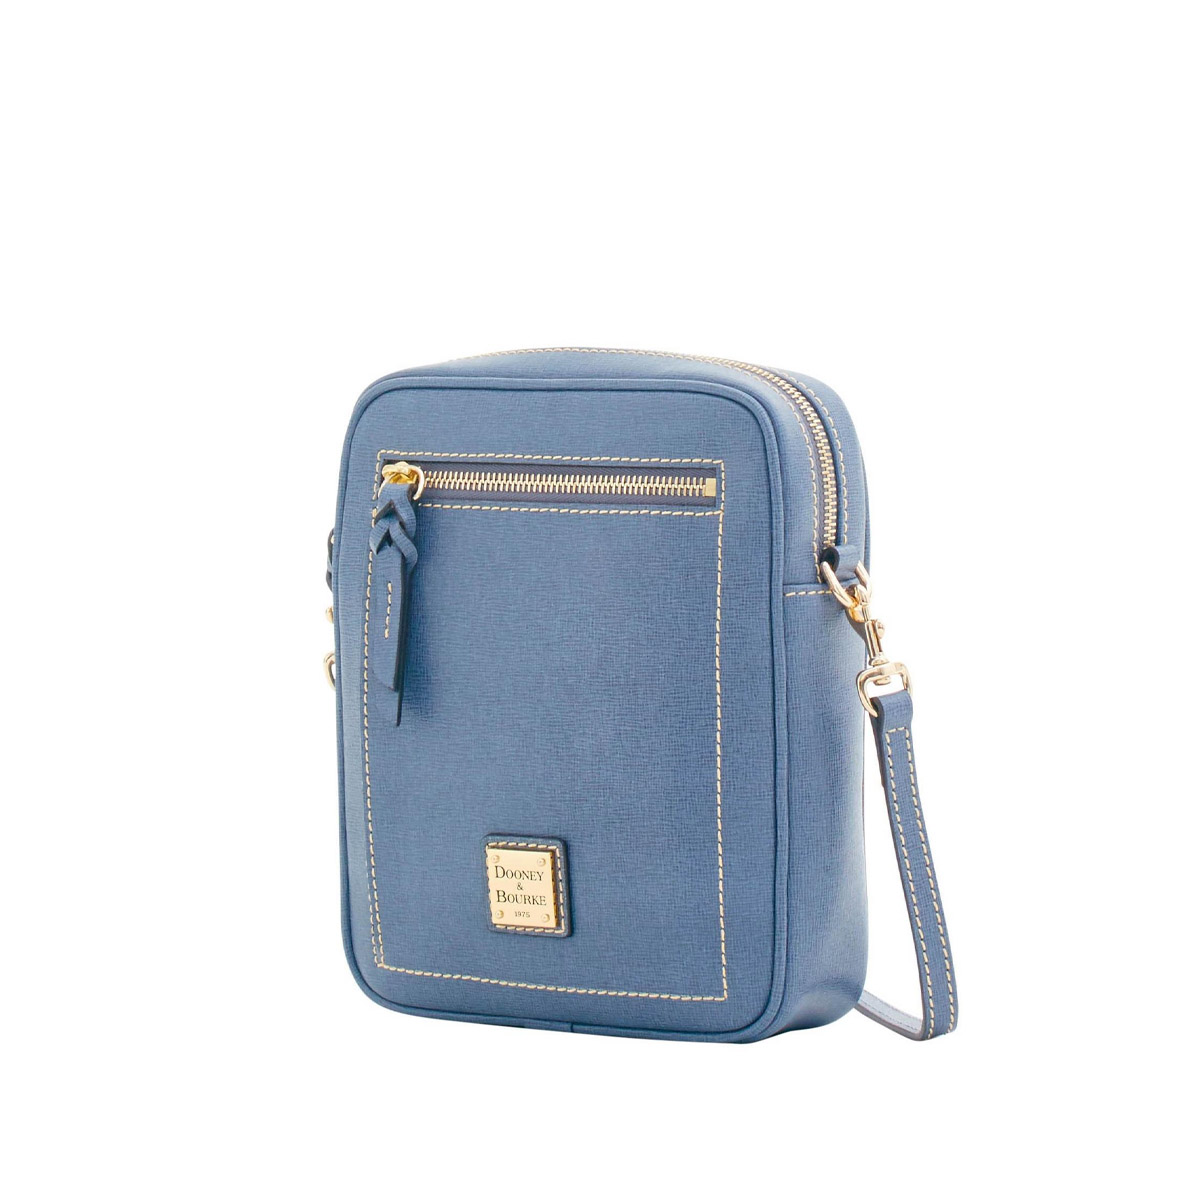 Dooney & Bourke Camera Crossbody Bag - Generously contributed by D&B, the Camera Crossbody bag in steel blue features a generous adjustable shoulder strap, and just the right amount of room to carry the essentials.Retail Value: $208.00